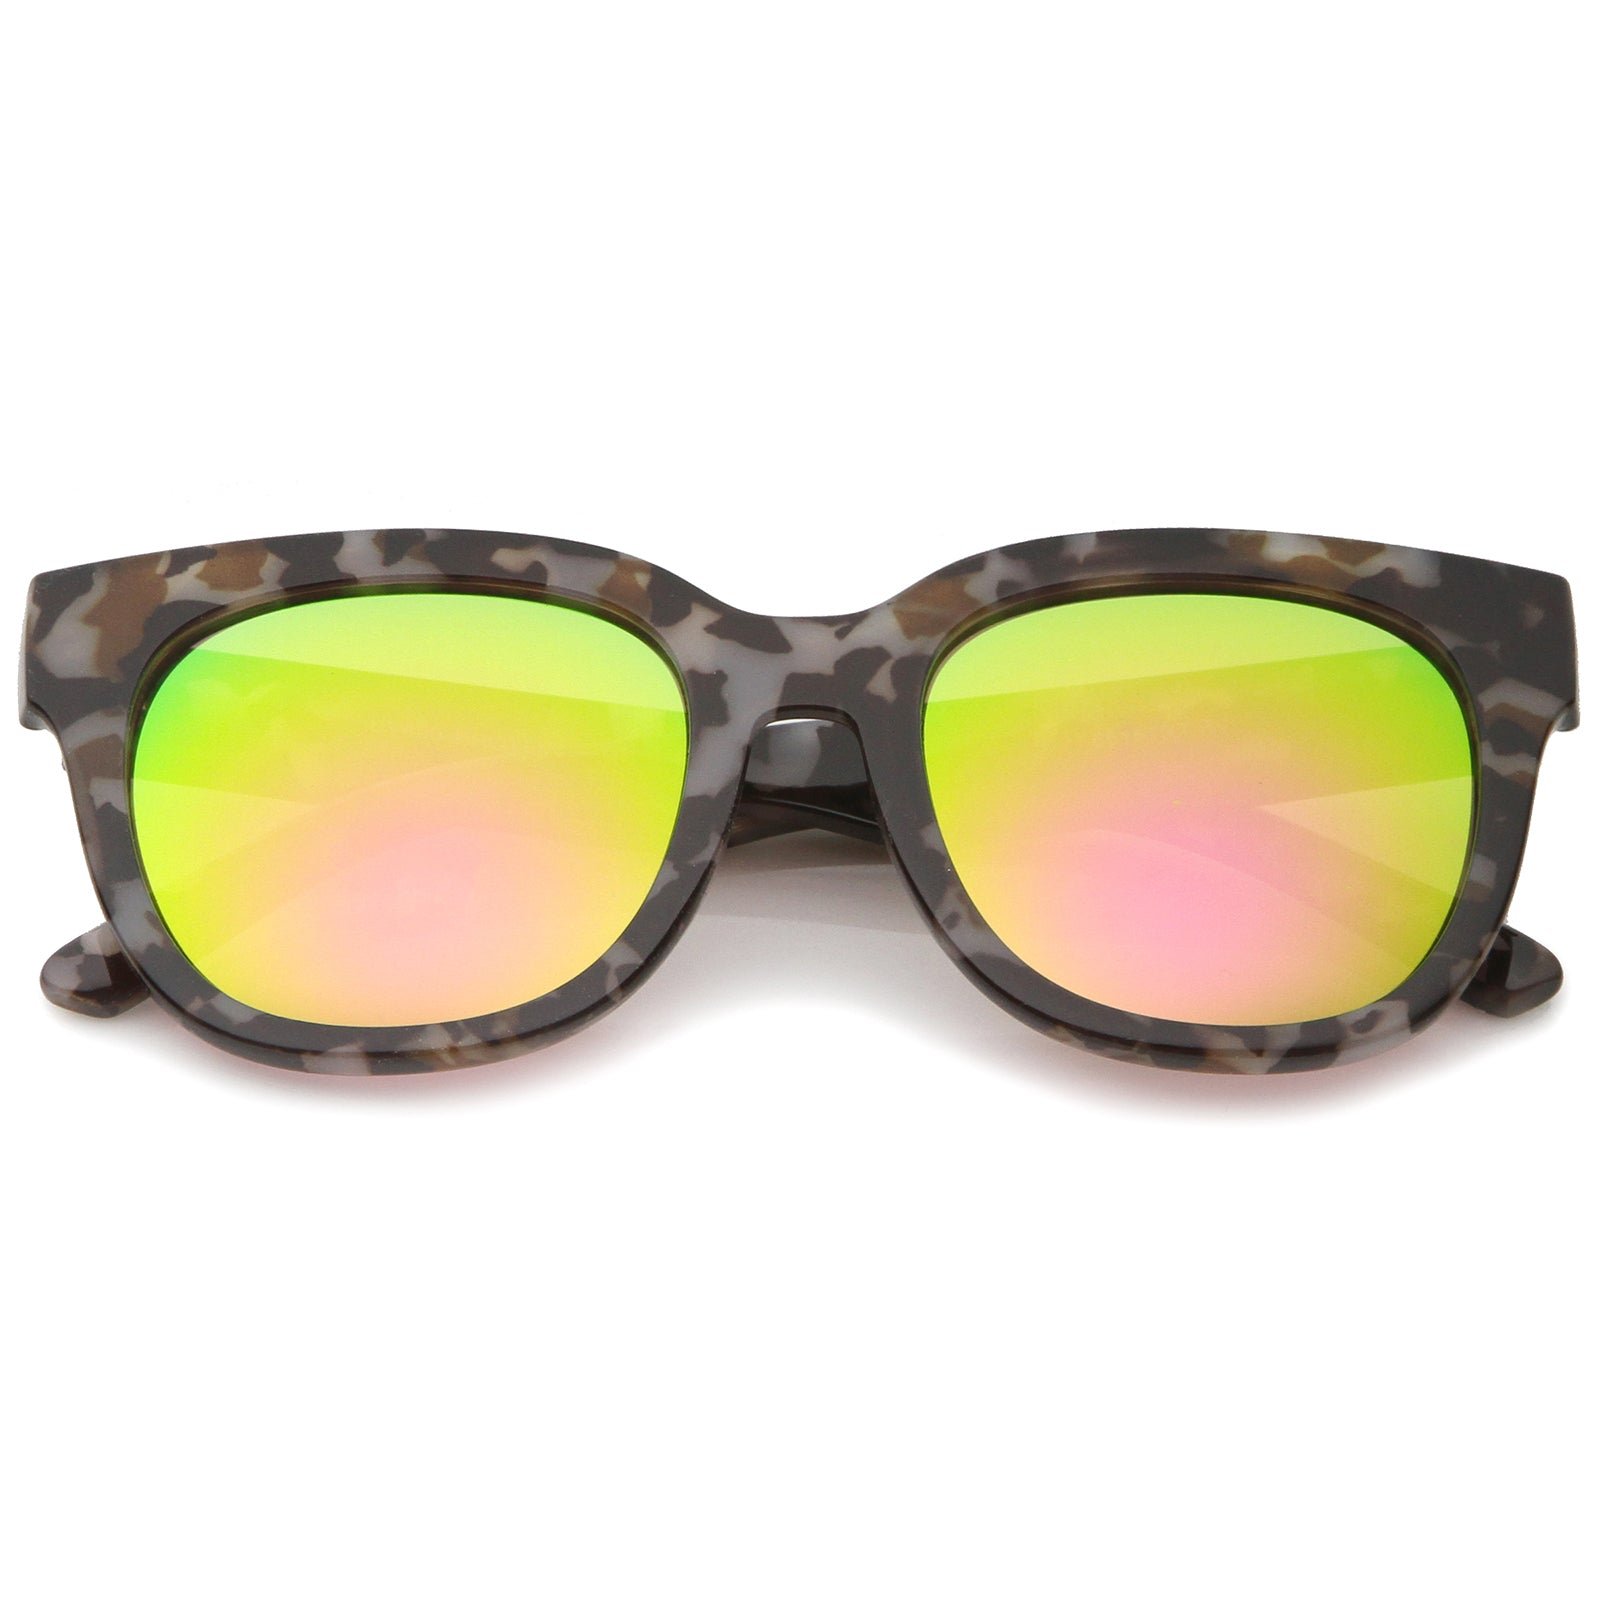 f3a1f1534 Womens Cat Eye Sunglasses With UV400 Protected Mirrored Lens ...